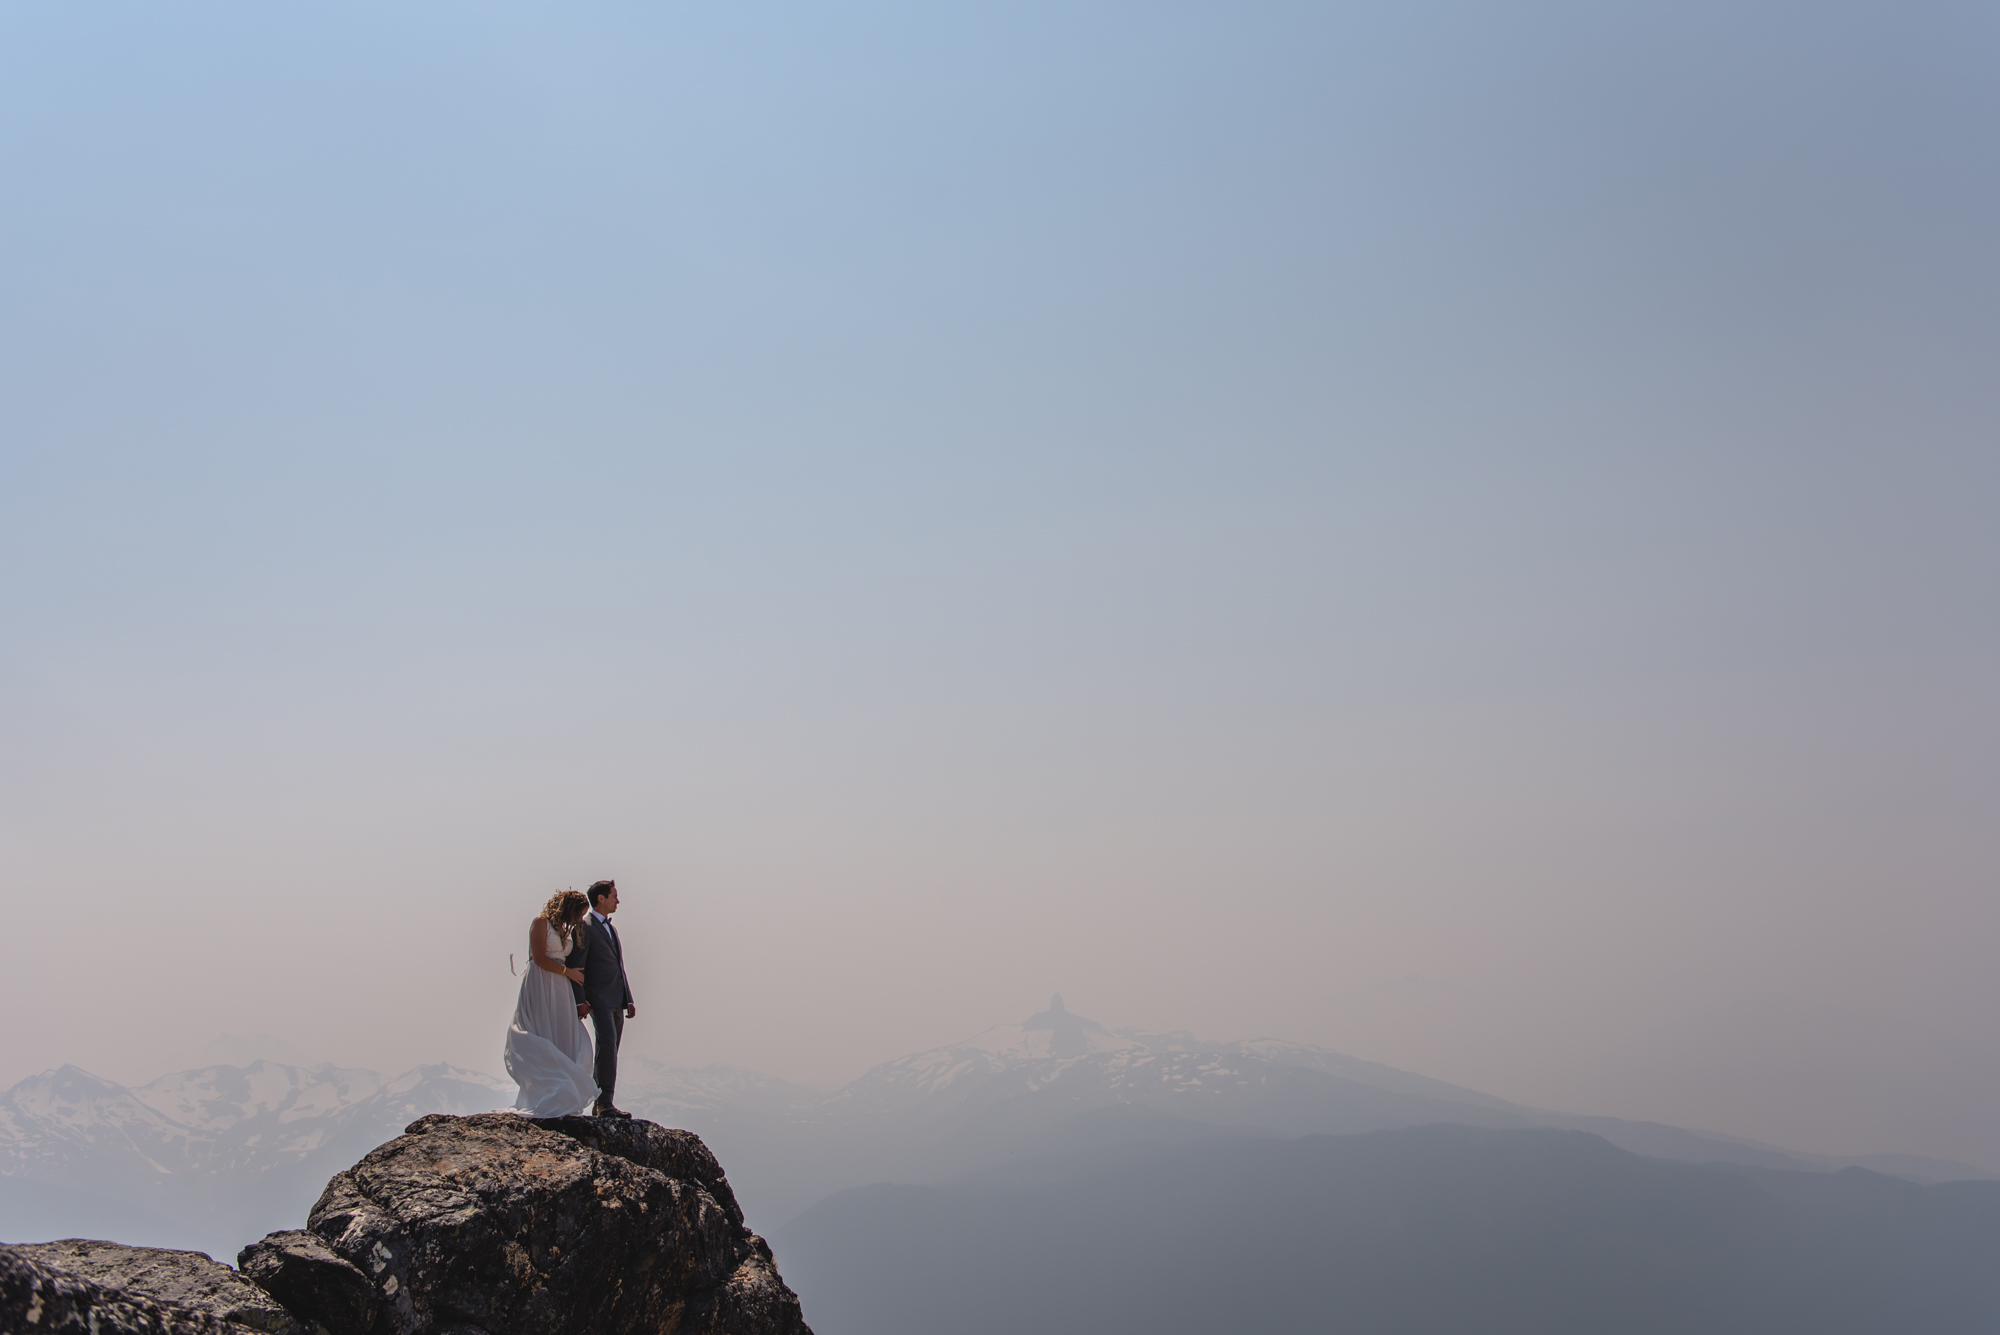 whistler peak wedding couple with black tusk